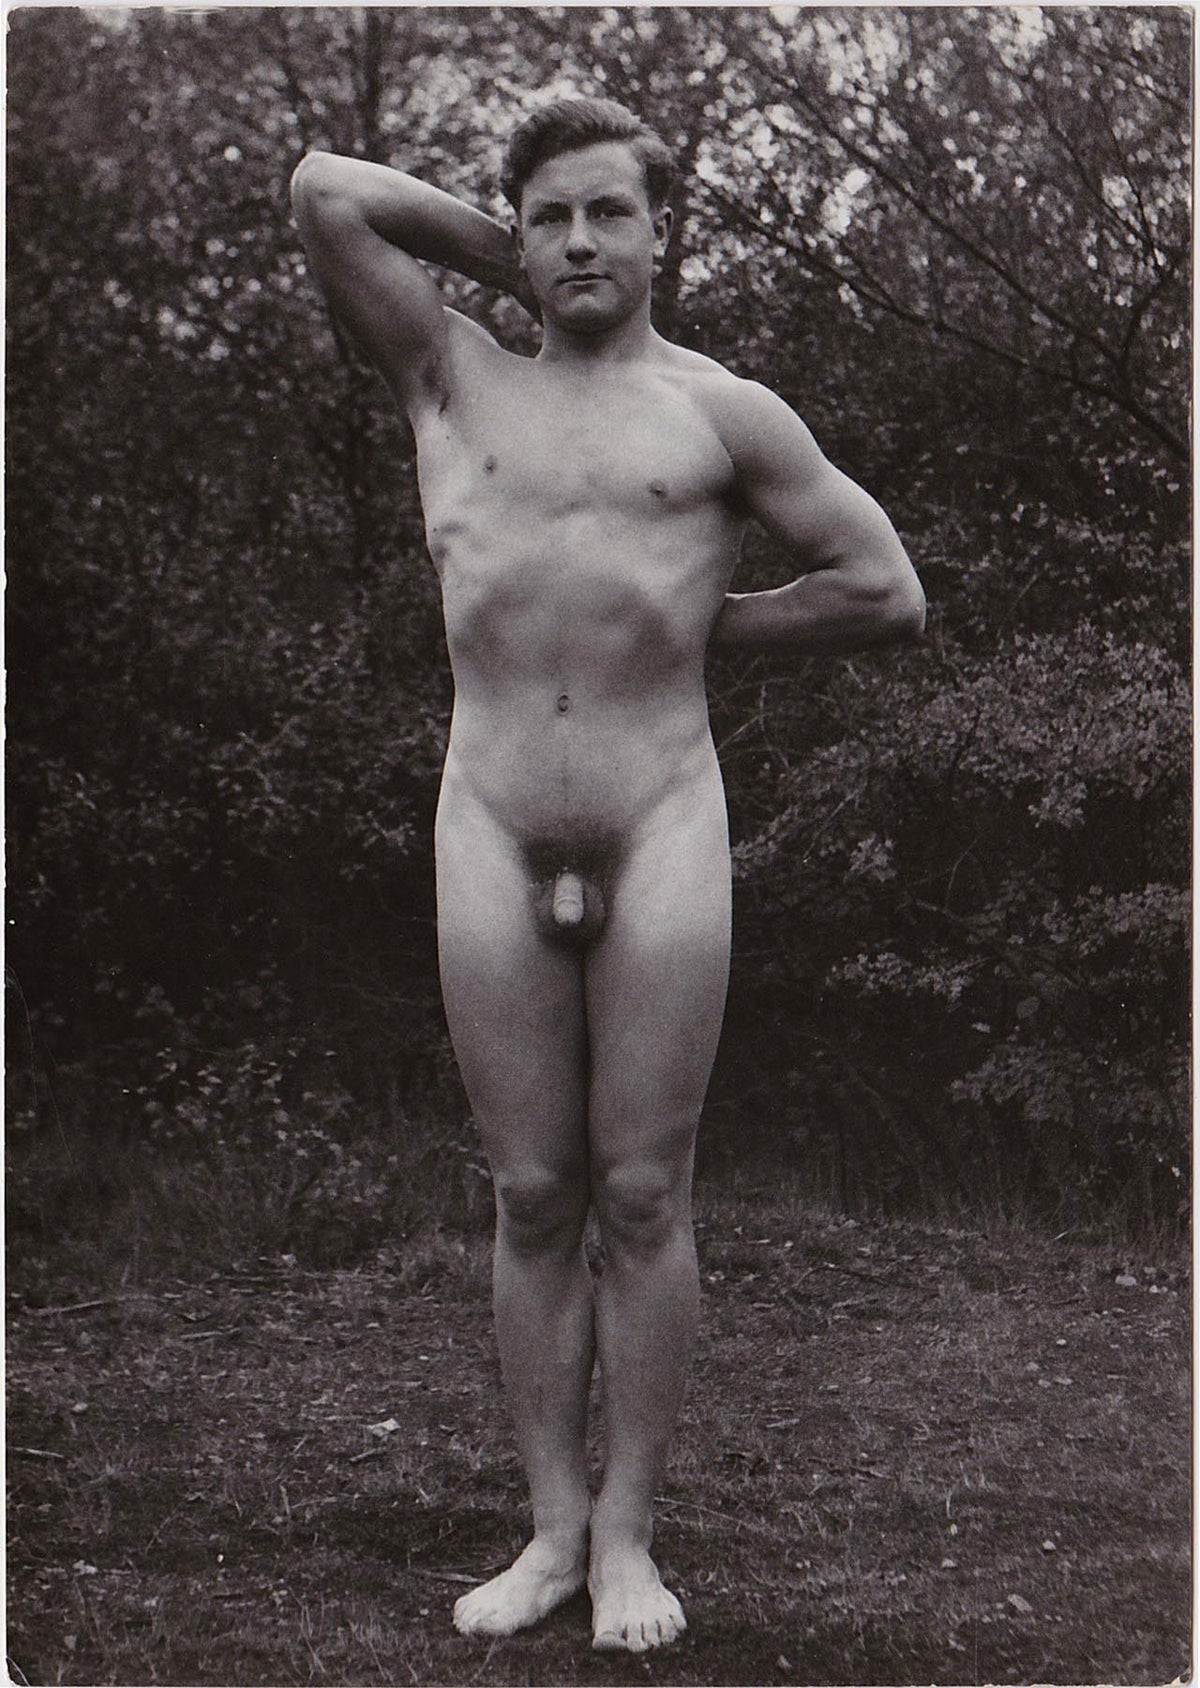 Vintage Physique Photo Standing Male Nude  Homobilia-3308